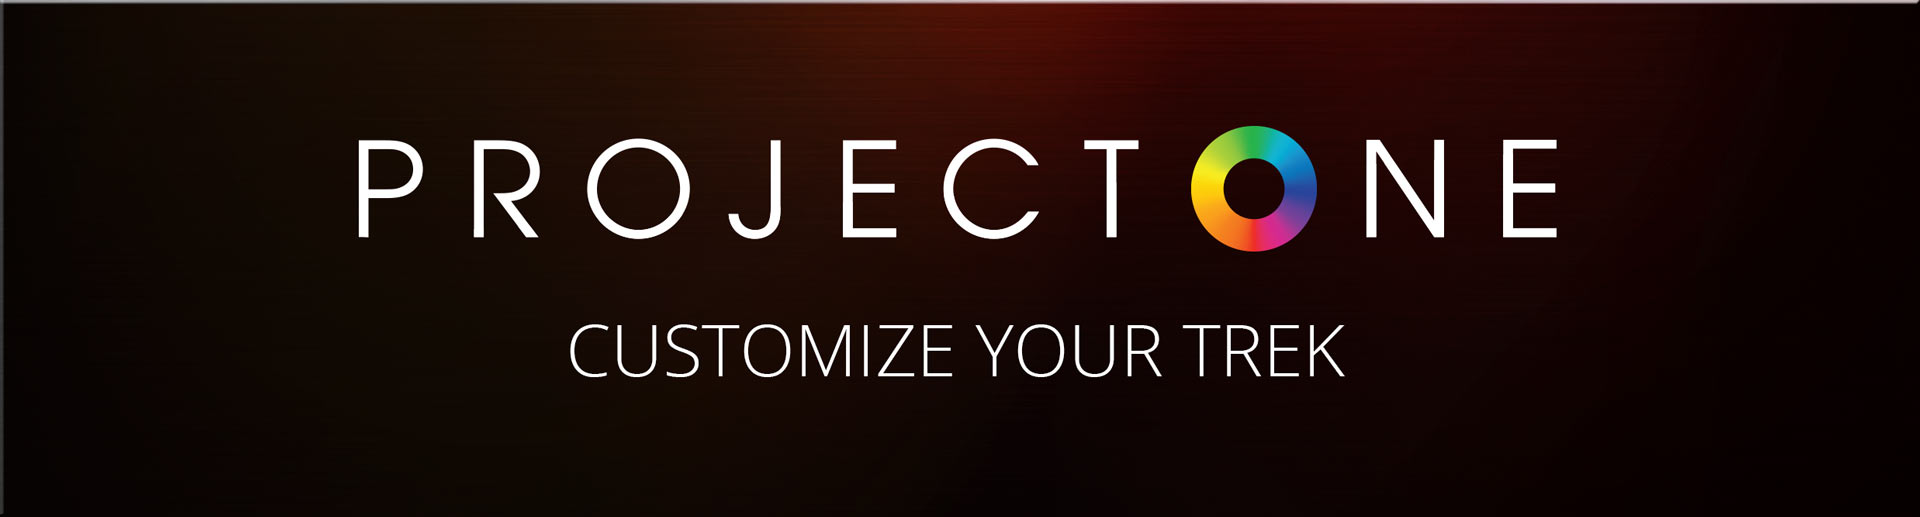 Project One - Customize your trek